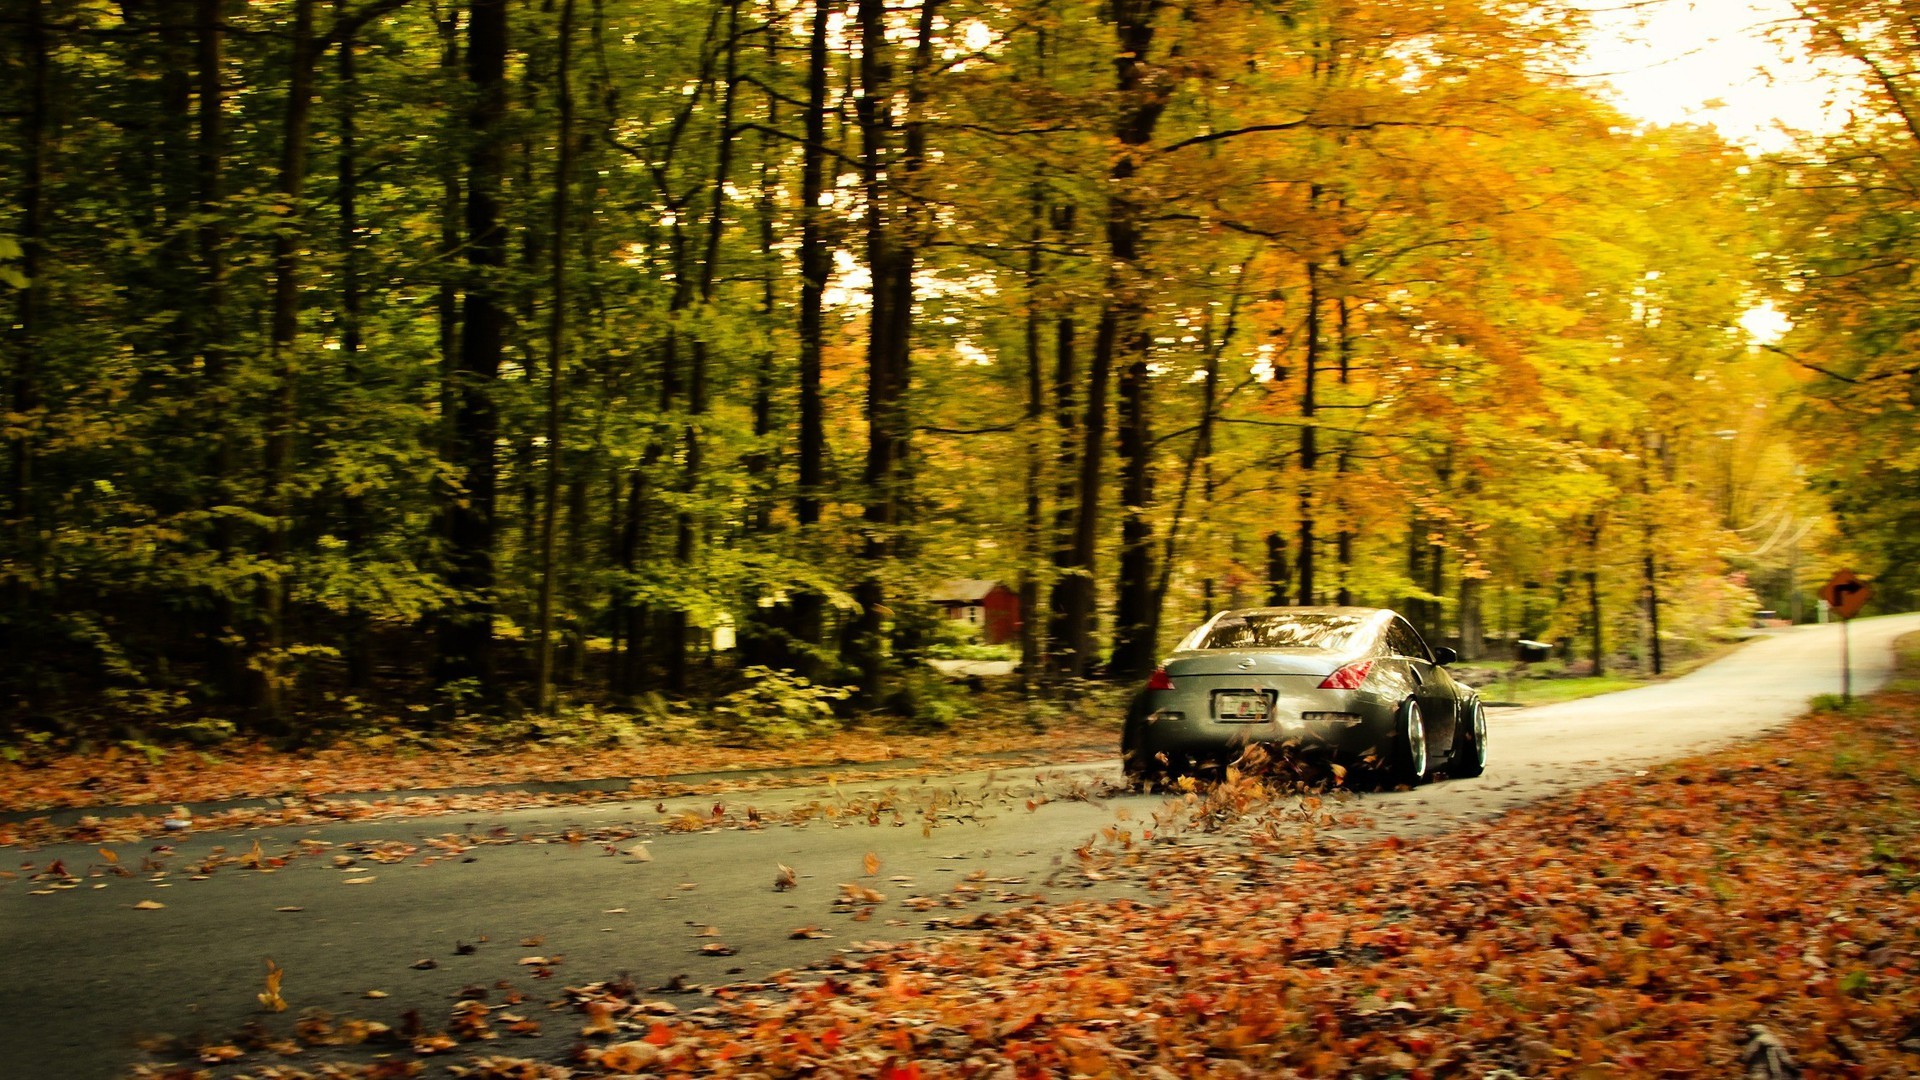 Iphone Wallpaper Fall Leaves Nissan 350z Fallen Leaves Wallpaper Allwallpaper In